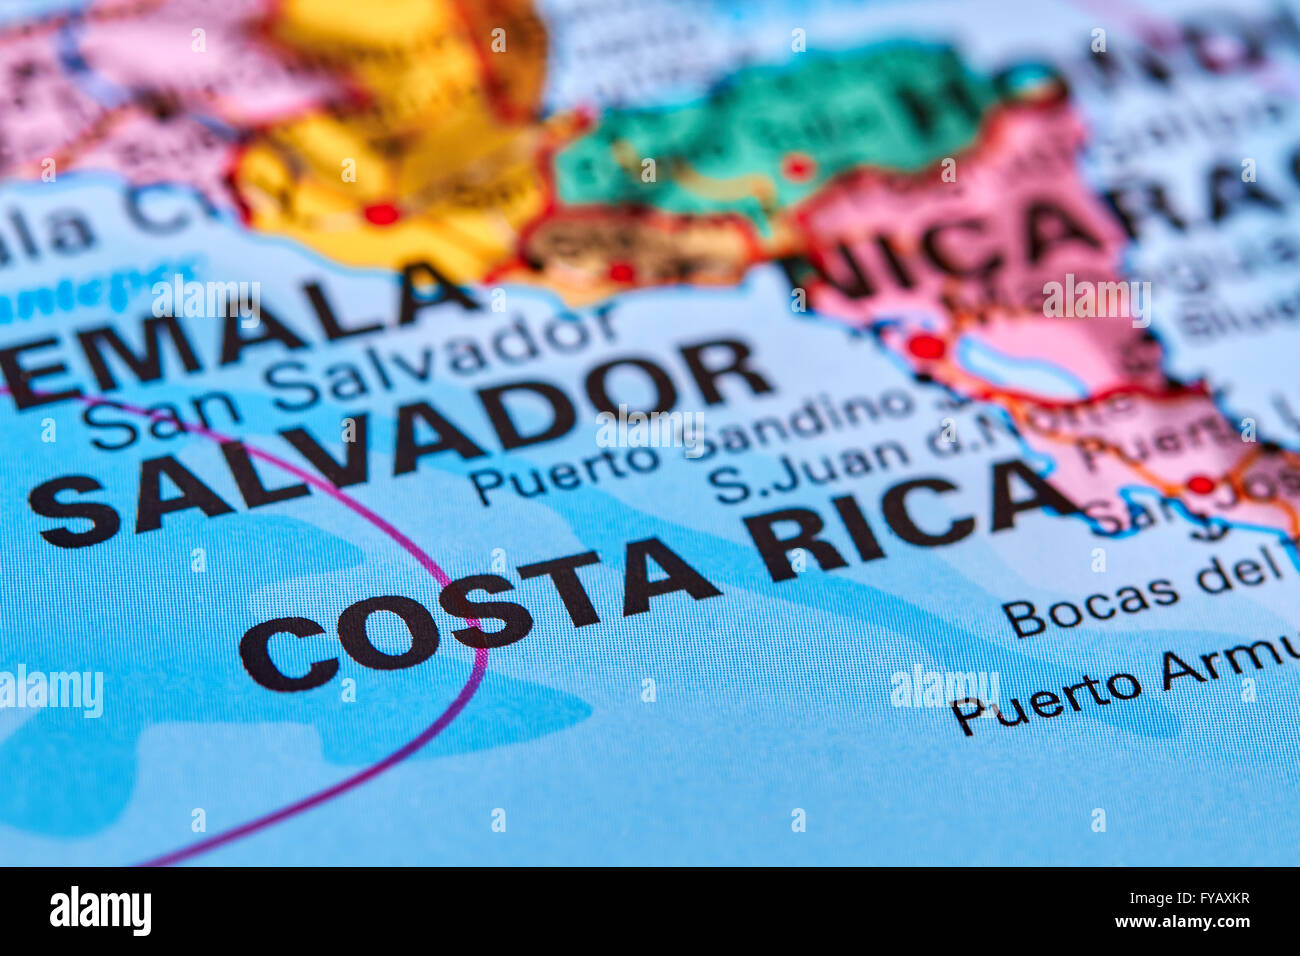 Costa rica country in central america on the world map stock costa rica country in central america on the world map gumiabroncs Image collections